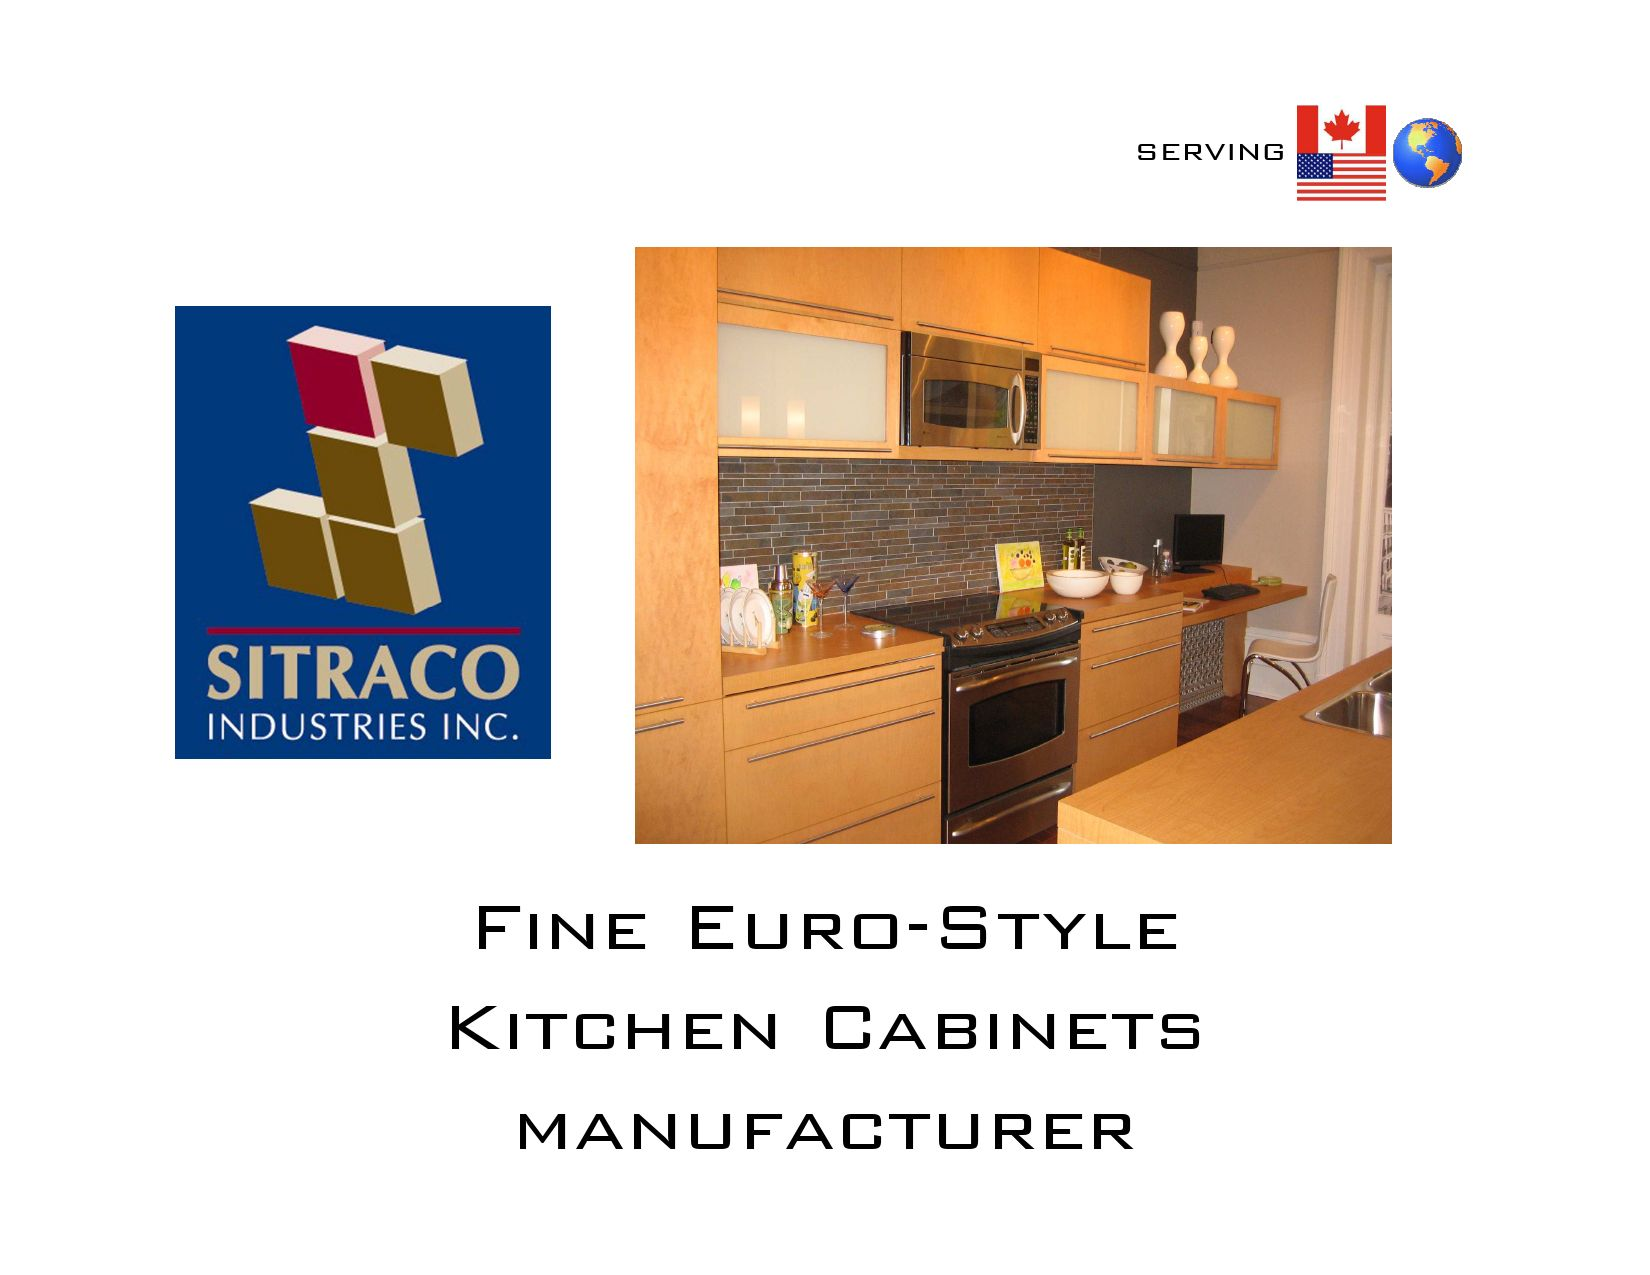 eurostyle kitchen cabinets cupcake accessories sitraco industries inc by said tadjer issuu